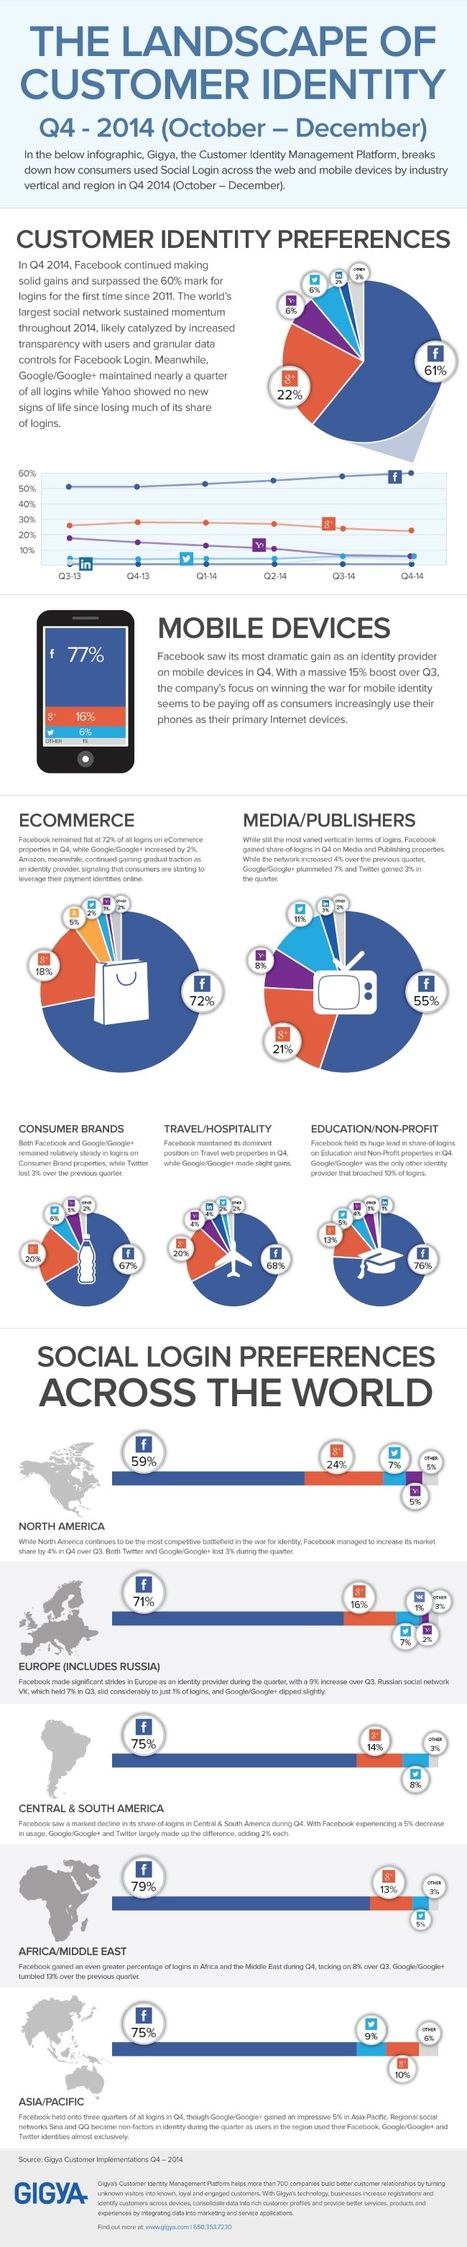 INFOGRAPHIC: Facebook Accounts for 61% of 4Q 2014 Social Logins | Better know and better use Social Media today (facebook, twitter...) | Scoop.it